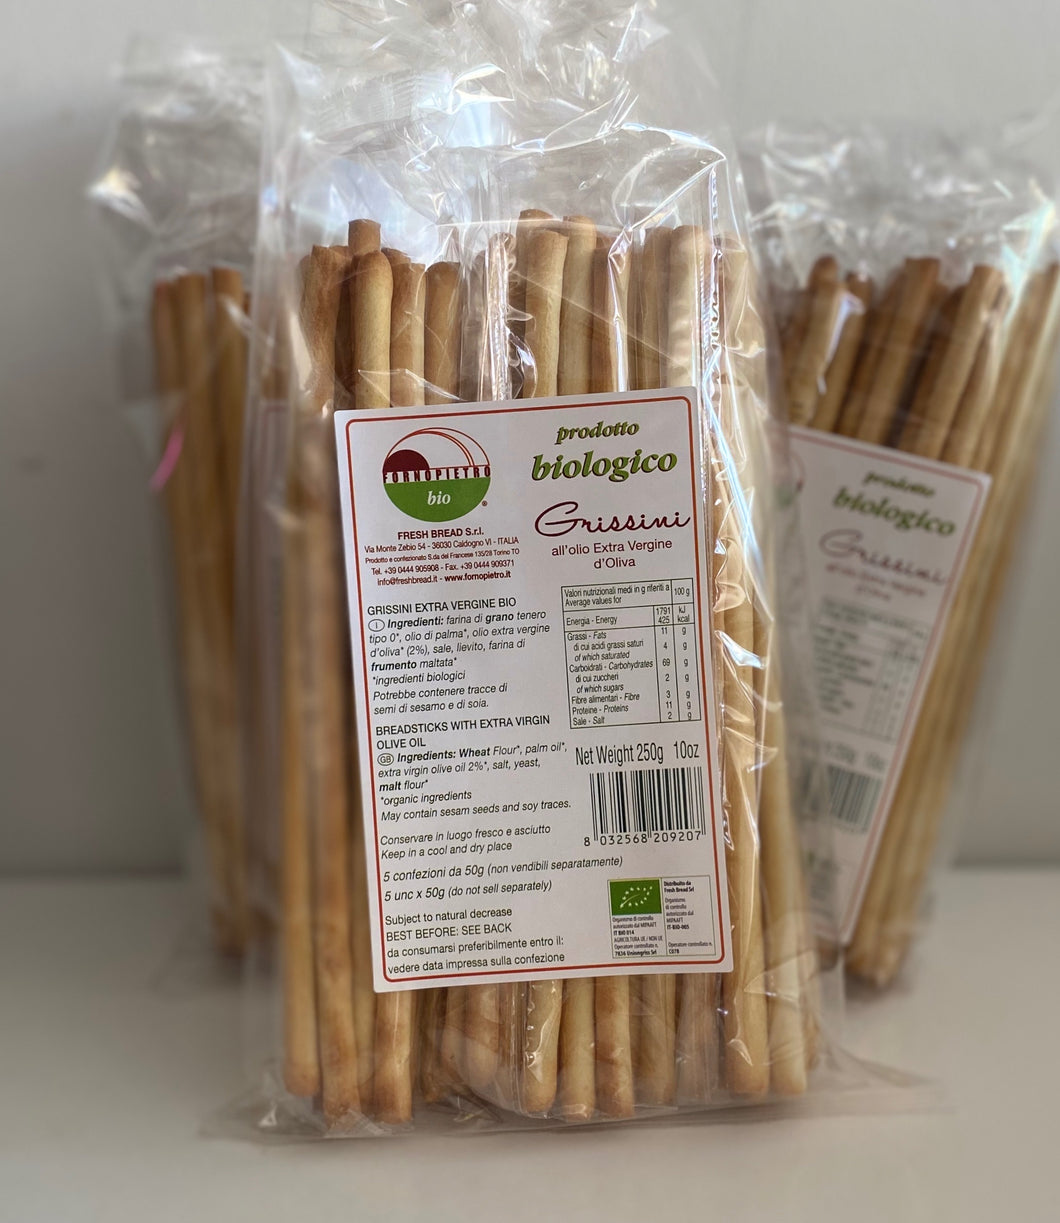 Breadsticks - Mimi and Ry Produce